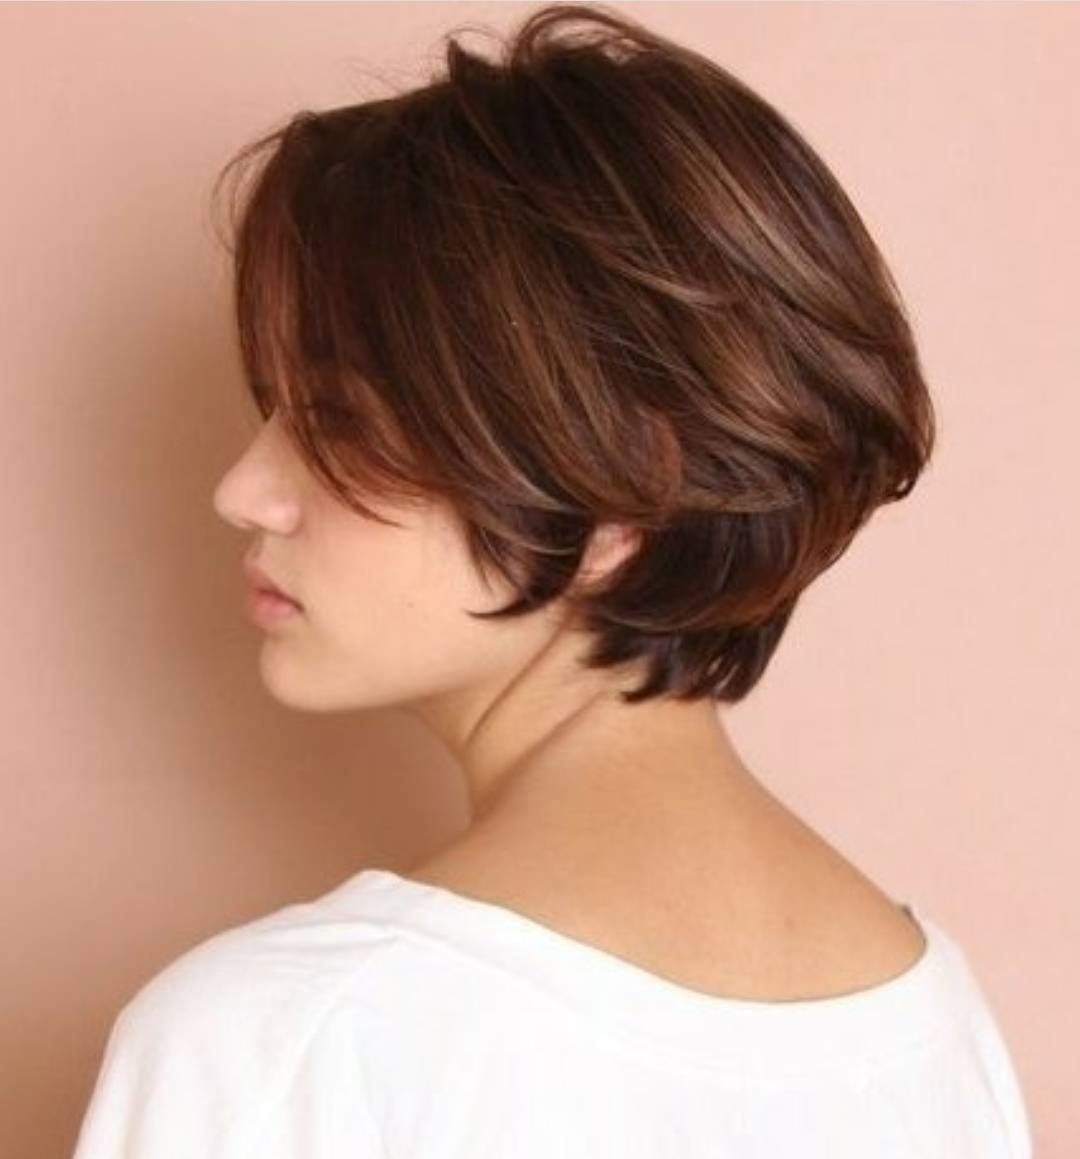 10 Chic Short Bob Haircuts That Balance Your Face Shape Short